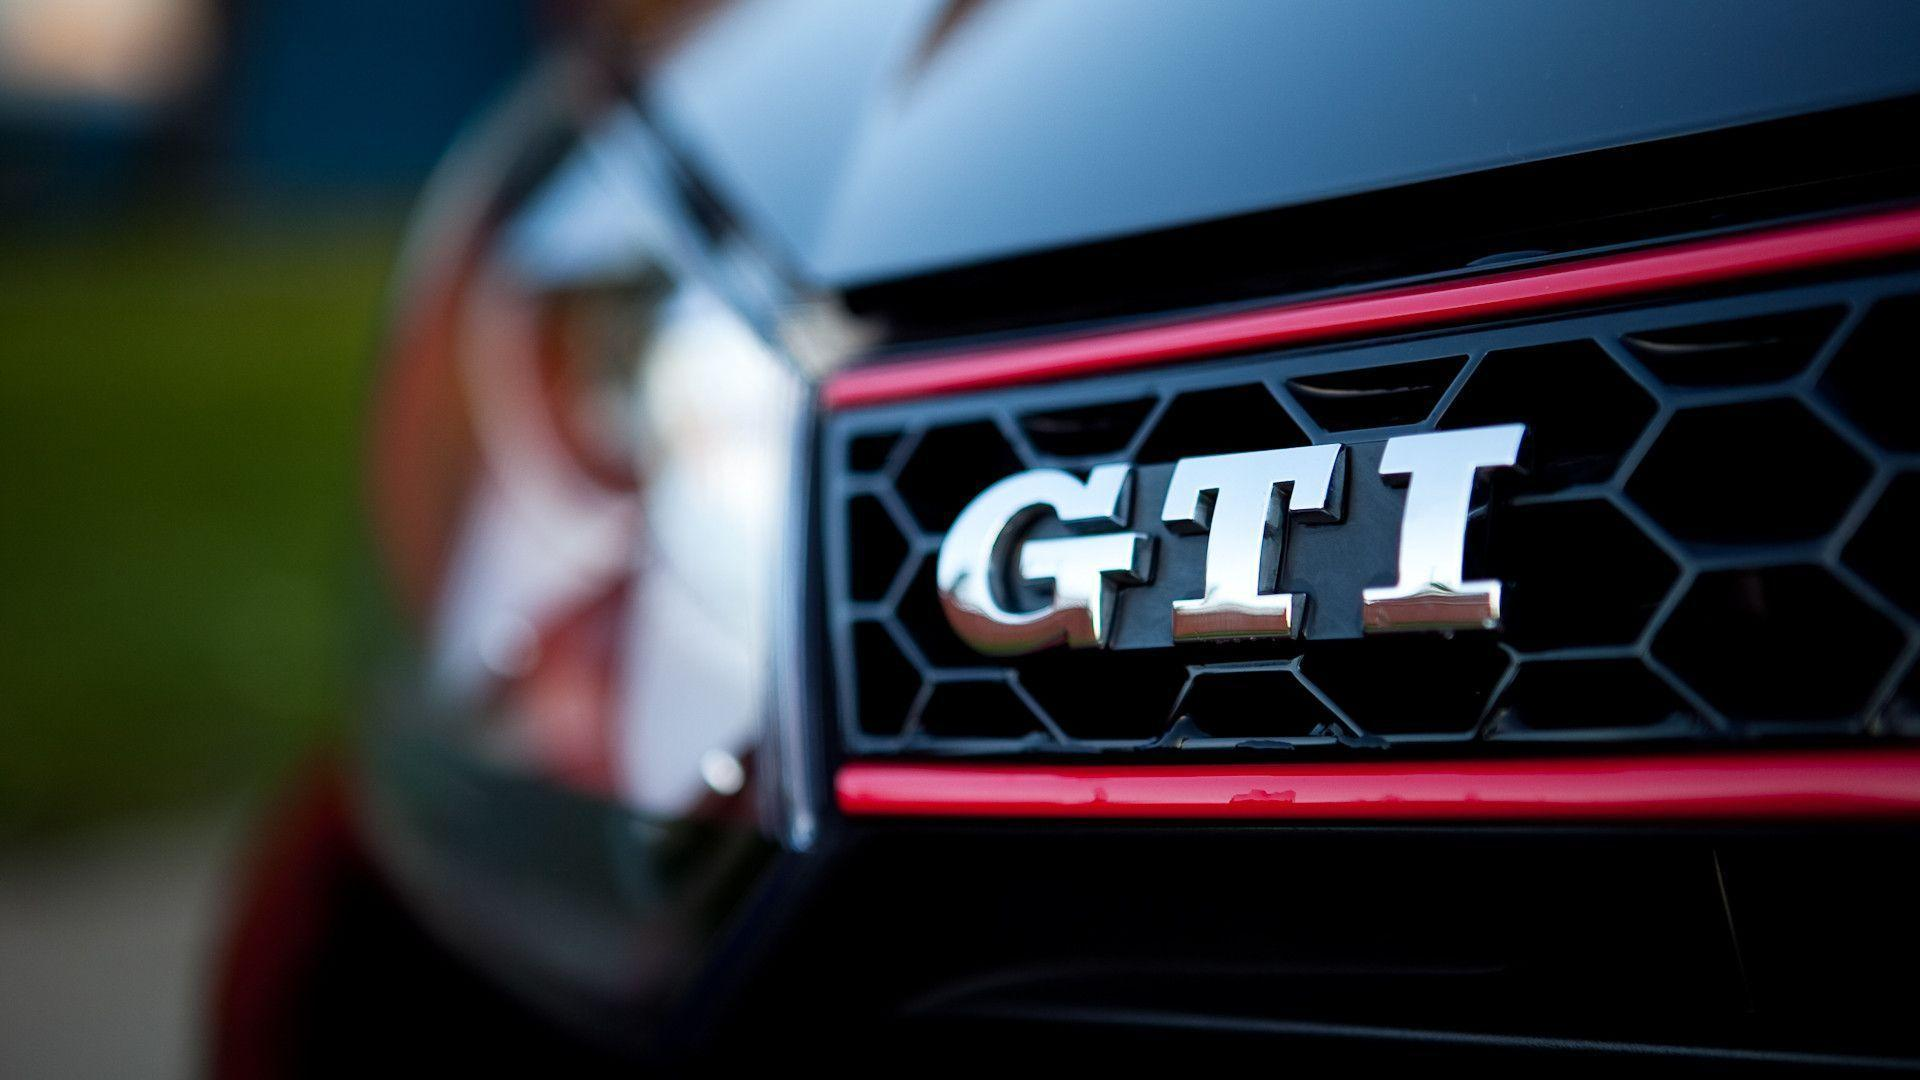 Gti Wallpapers Top Free Gti Backgrounds Wallpaperaccess